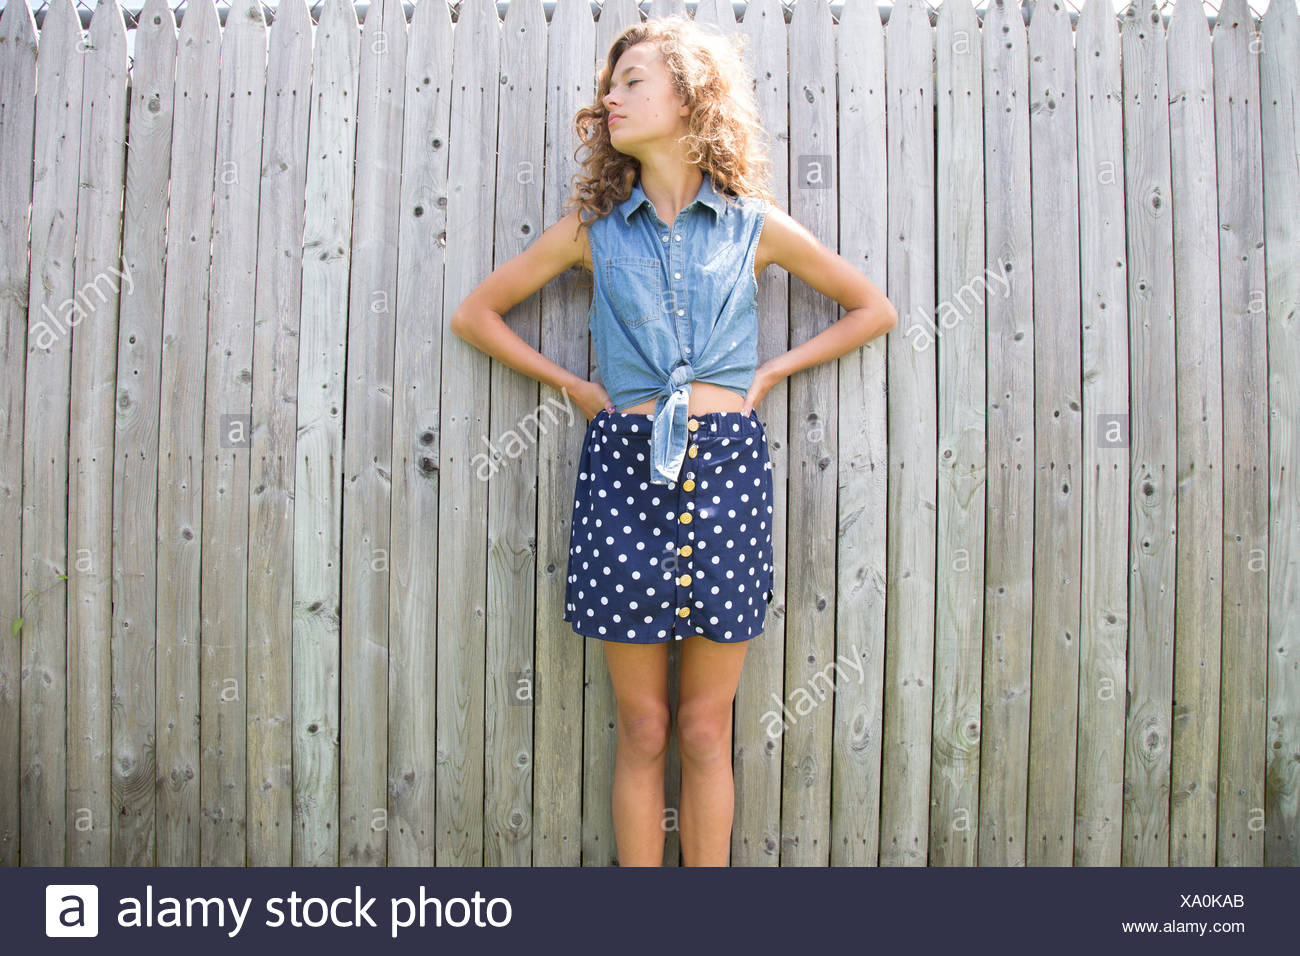 8f57be6b70f93 Portrait of teenage girl in front of wooden fence - Stock Image